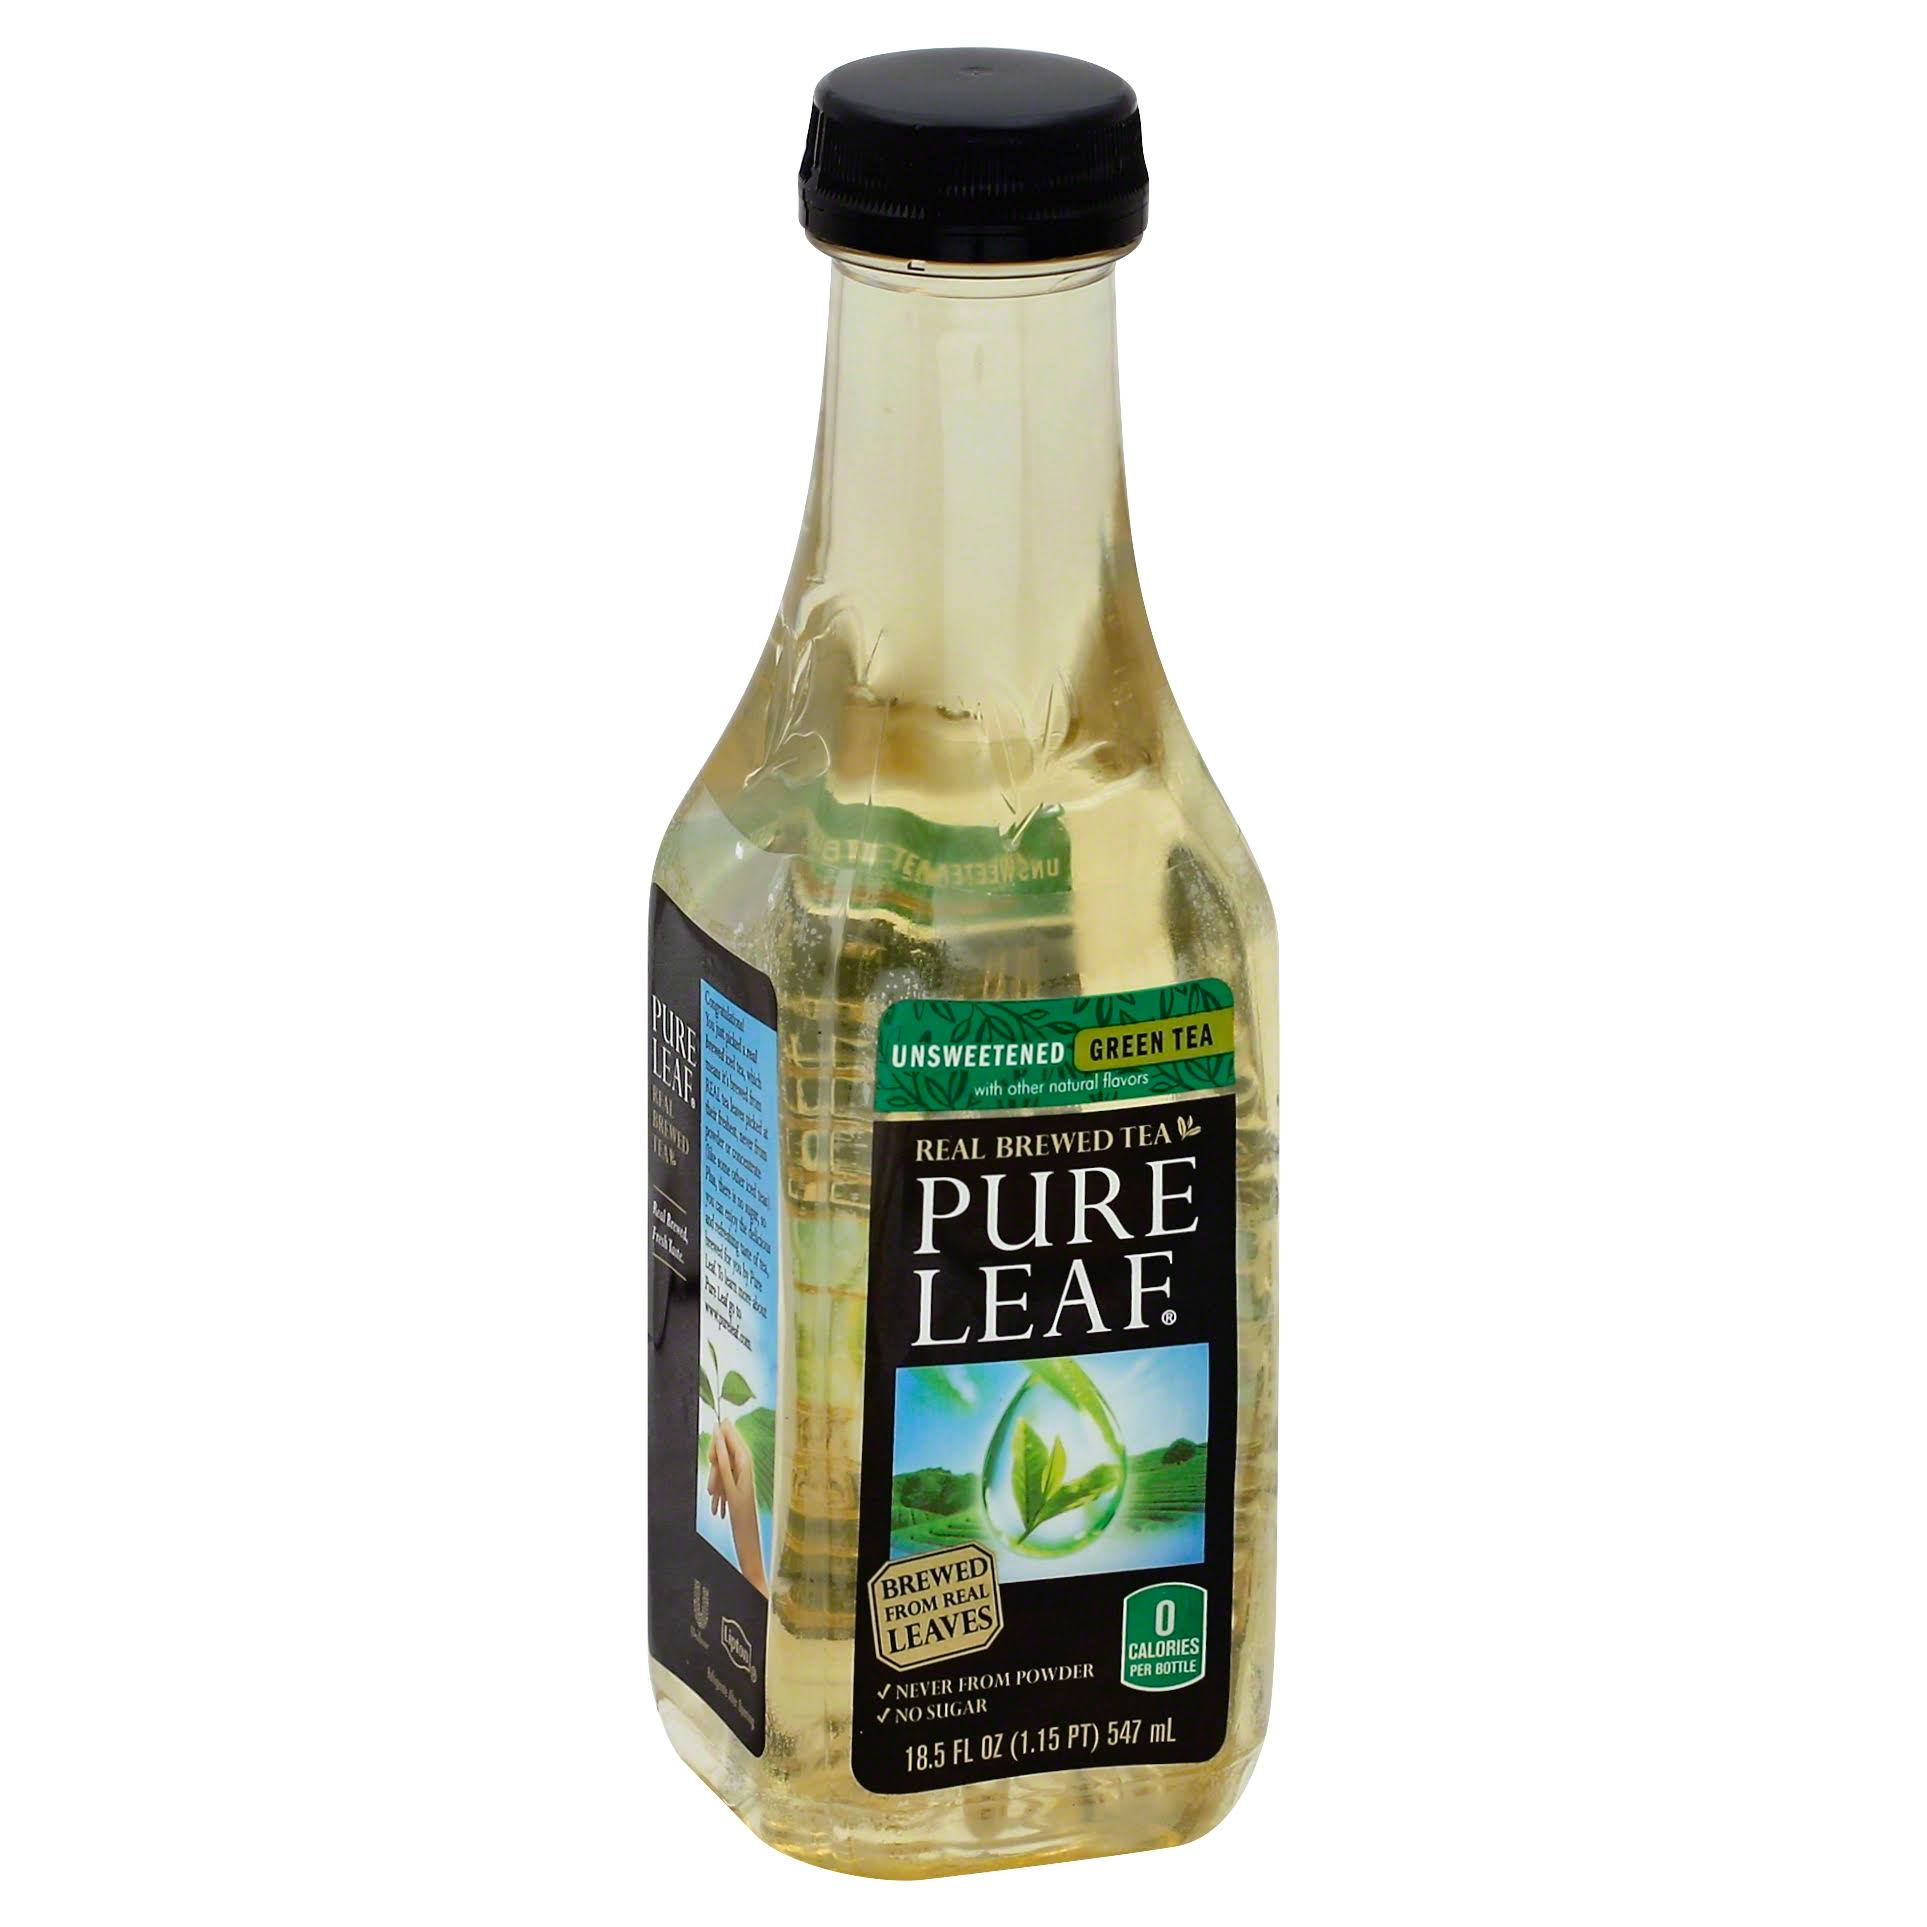 Pure Leaf Iced Green Tea - Unsweetened, 18.5oz